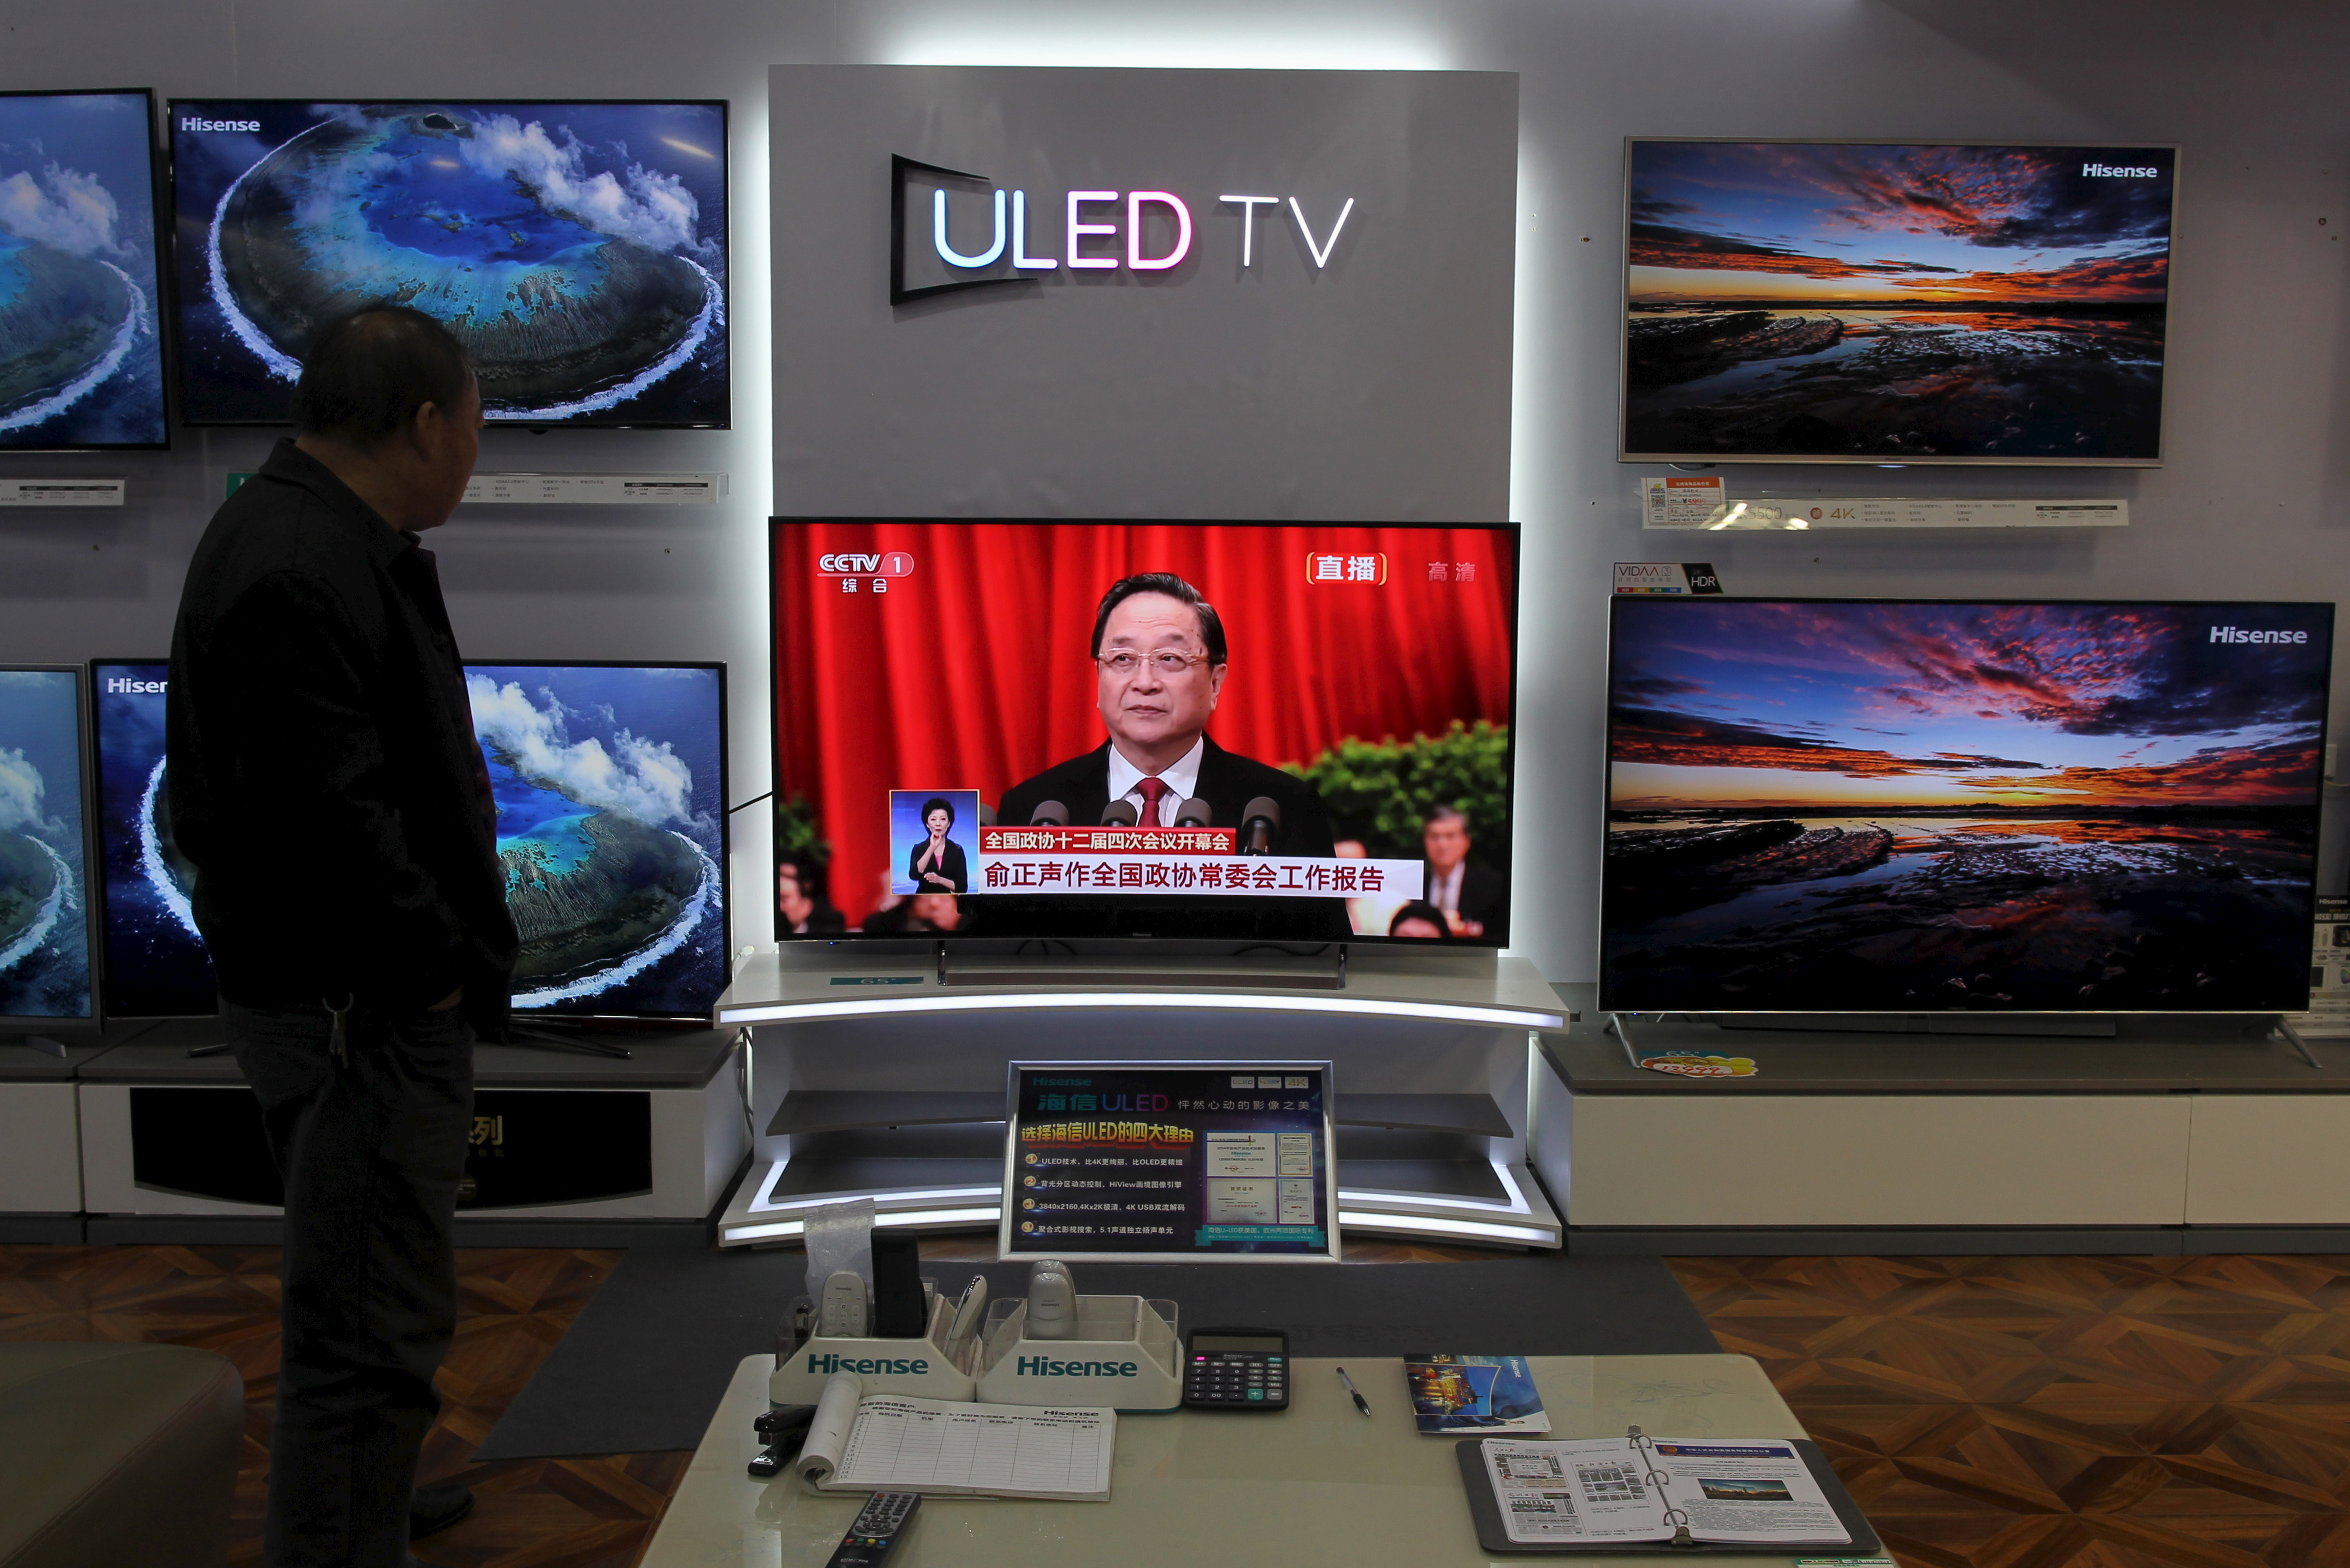 A man watches a TV screen showing live broadcast of Yu Zhengsheng, chairman of the National Committee of the Chinese People's Political Consultative Conference (CPPCC), giving a speech during the opening session of the CPPCC, at a shopping mall in Kunming, the Chinese province of Yunnan, on March 3, 2016